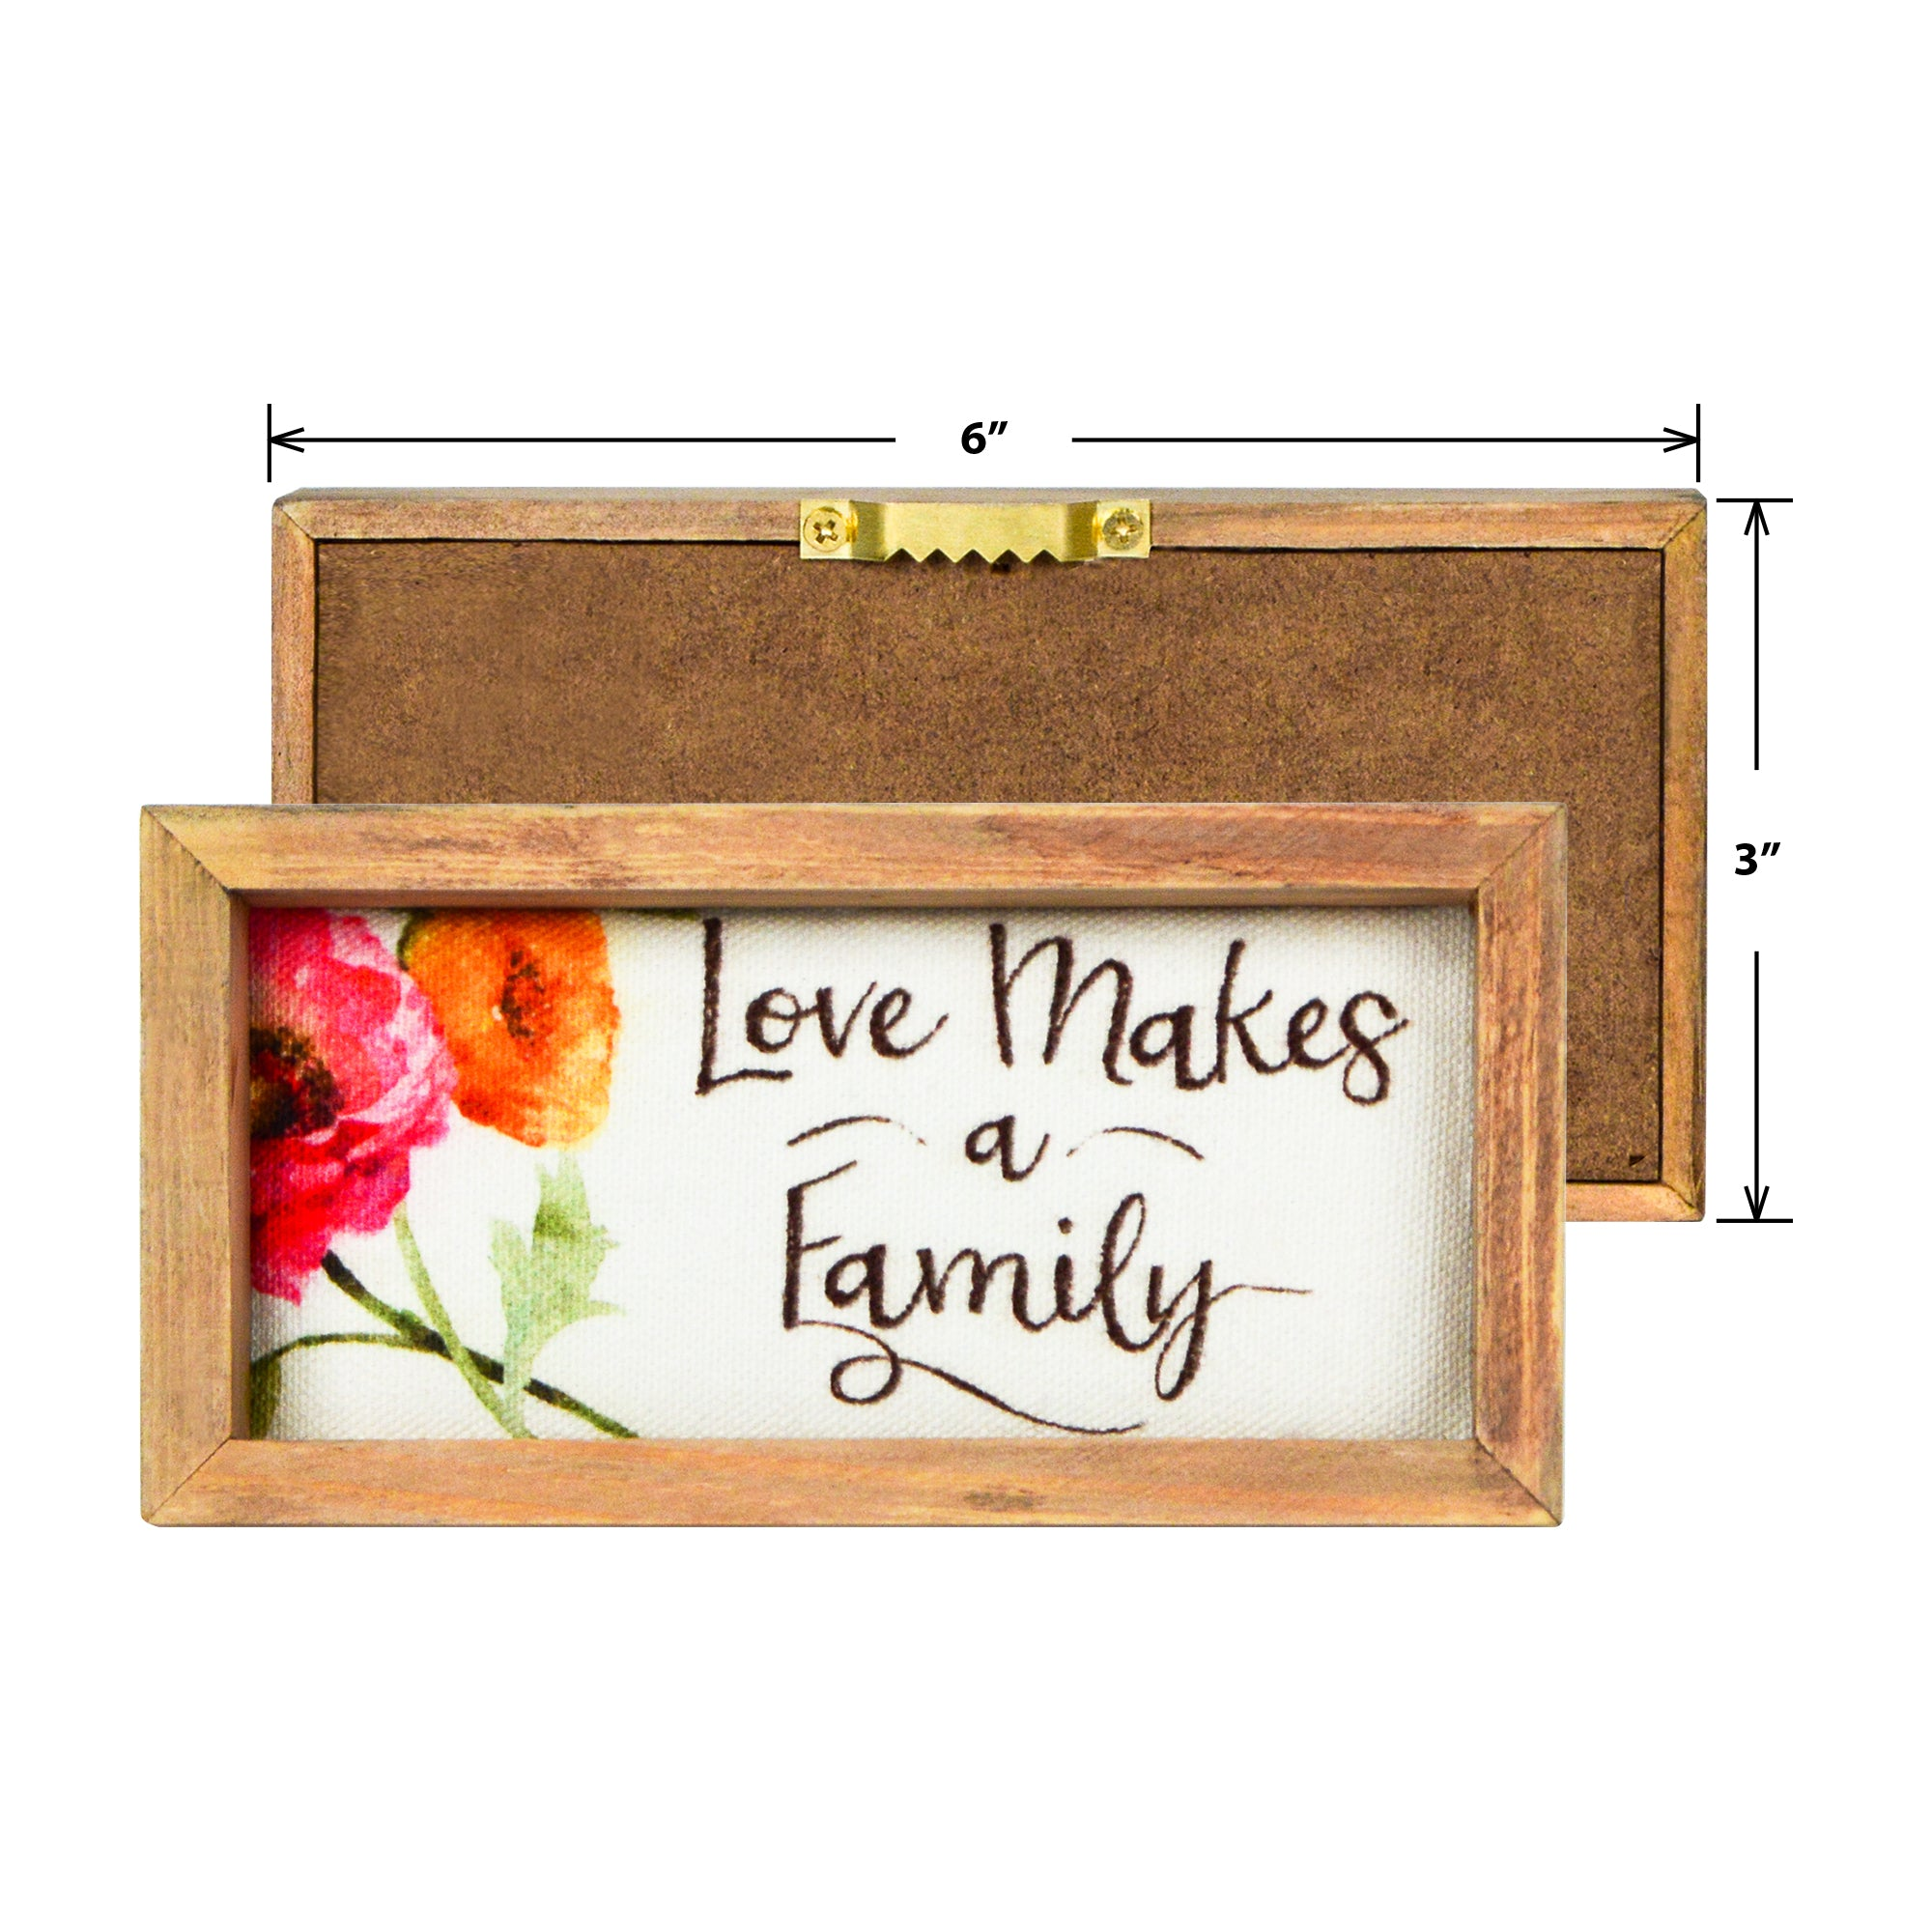 "Lisa Audit 6.5""x 3.25"" Love Makes a Family Decorative Wood Framed Canvas Wall Art"